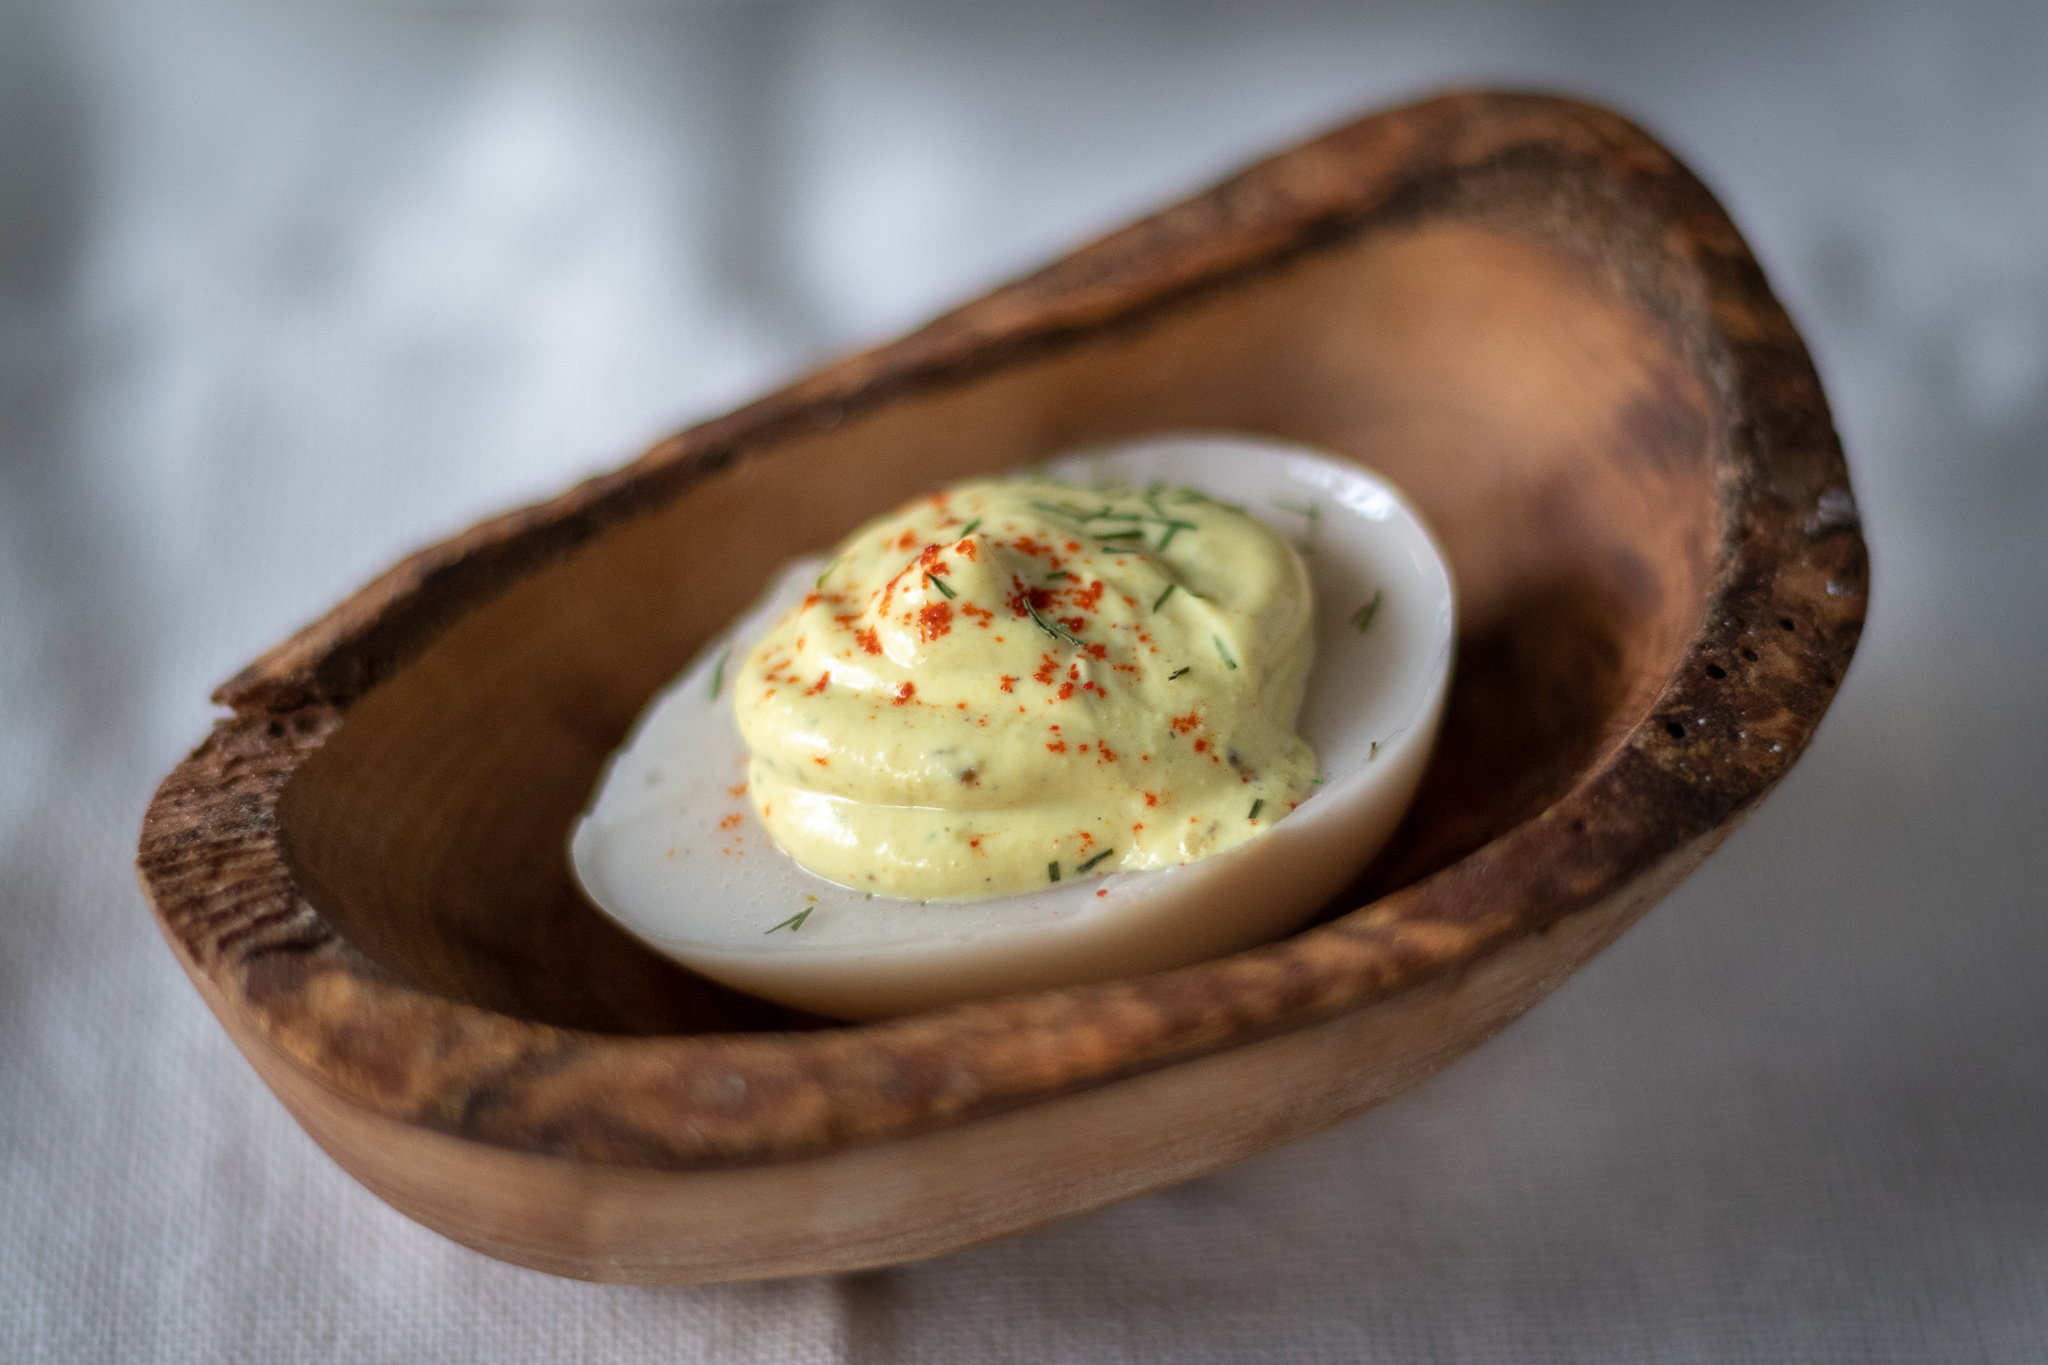 A single vegan deviled egg in a wooden serving dish